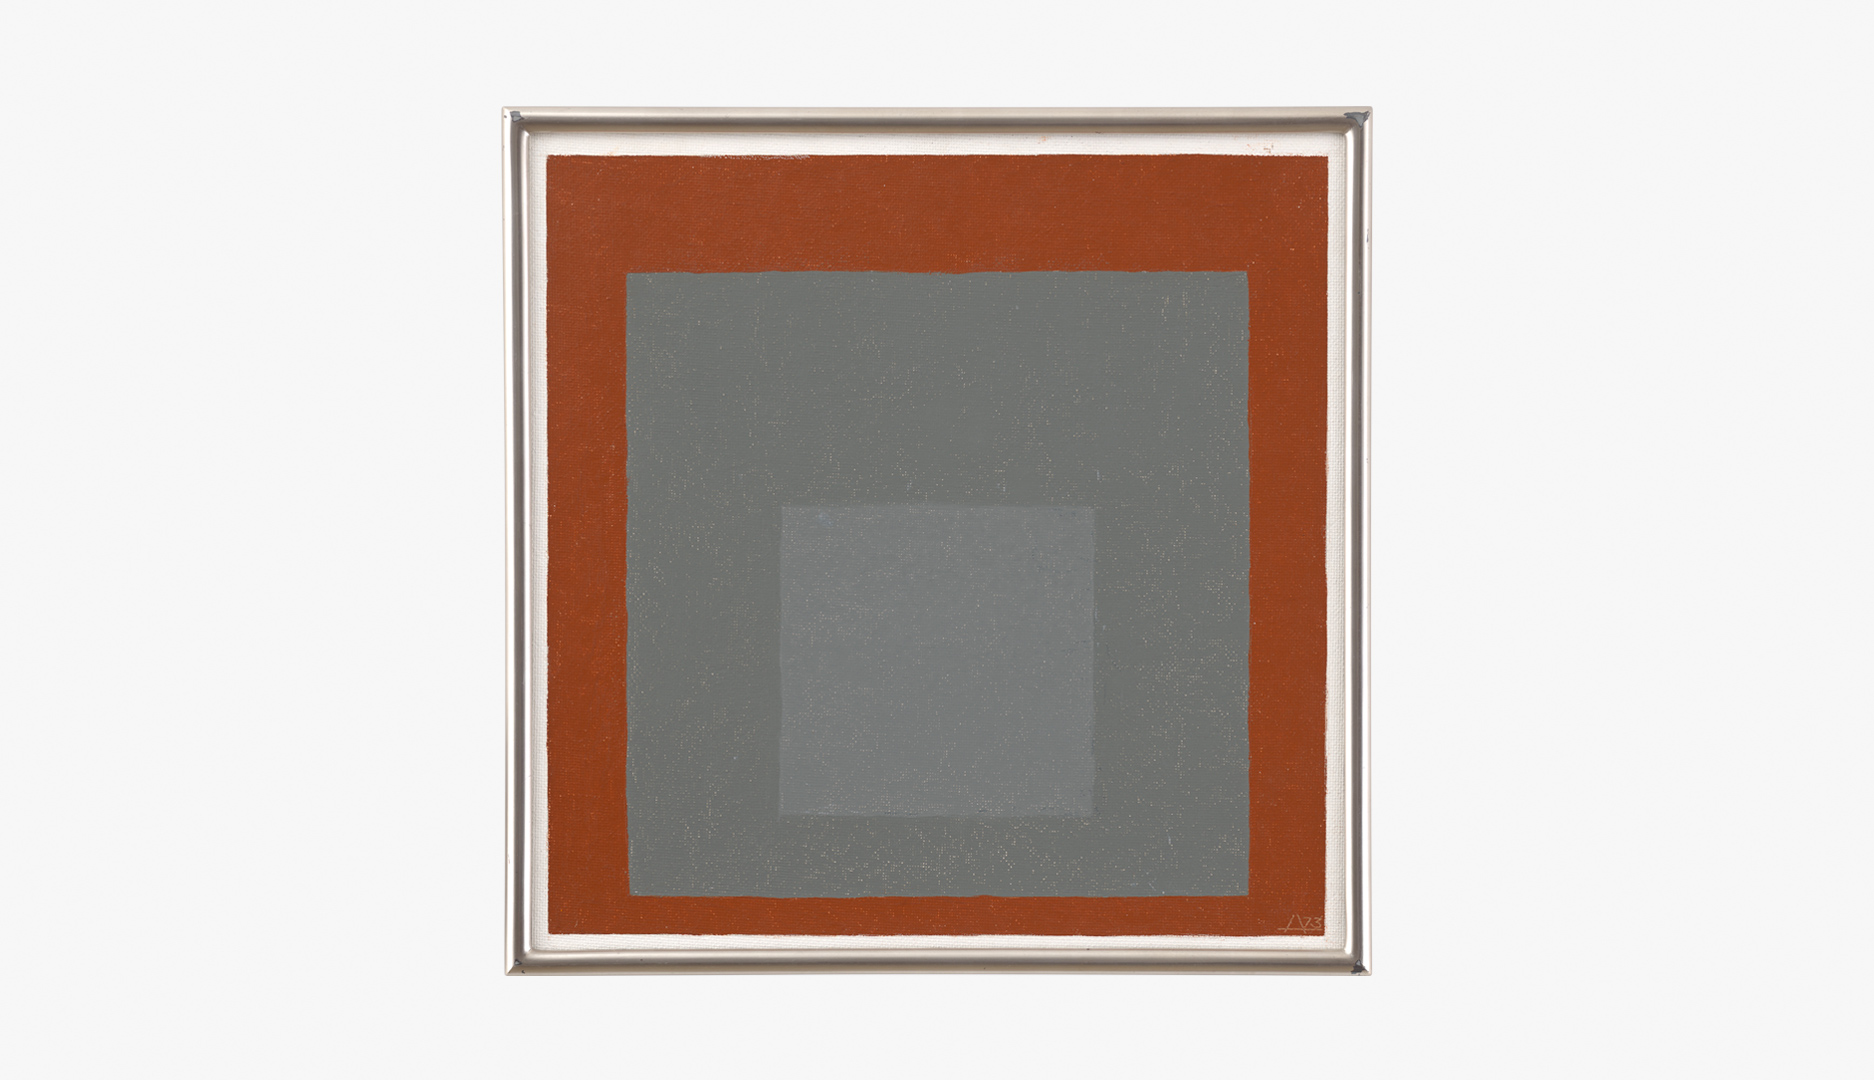 A painting by Josef Albers, titled Study for Homage to the Square, dated 1973.